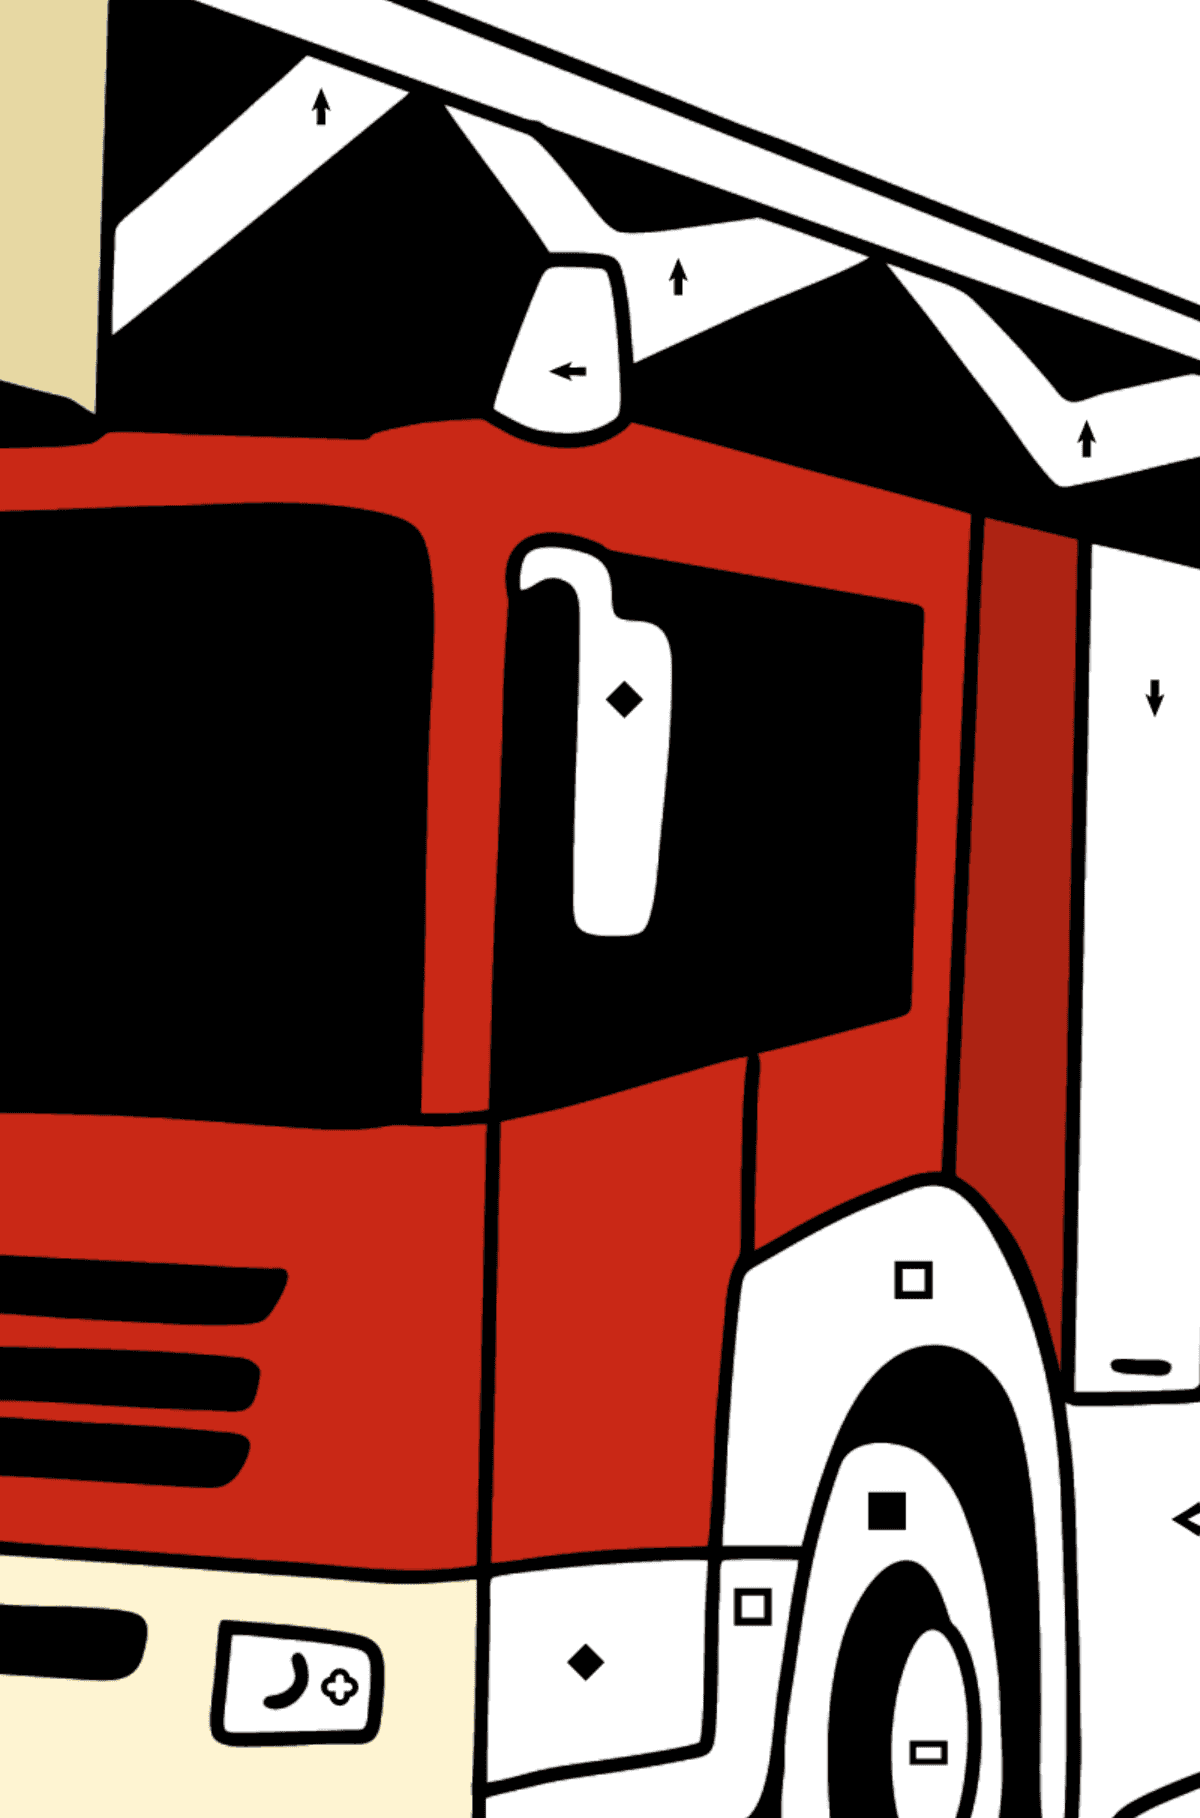 Fire Truck in Germany coloring page - Coloring by Symbols and Geometric Shapes for Kids